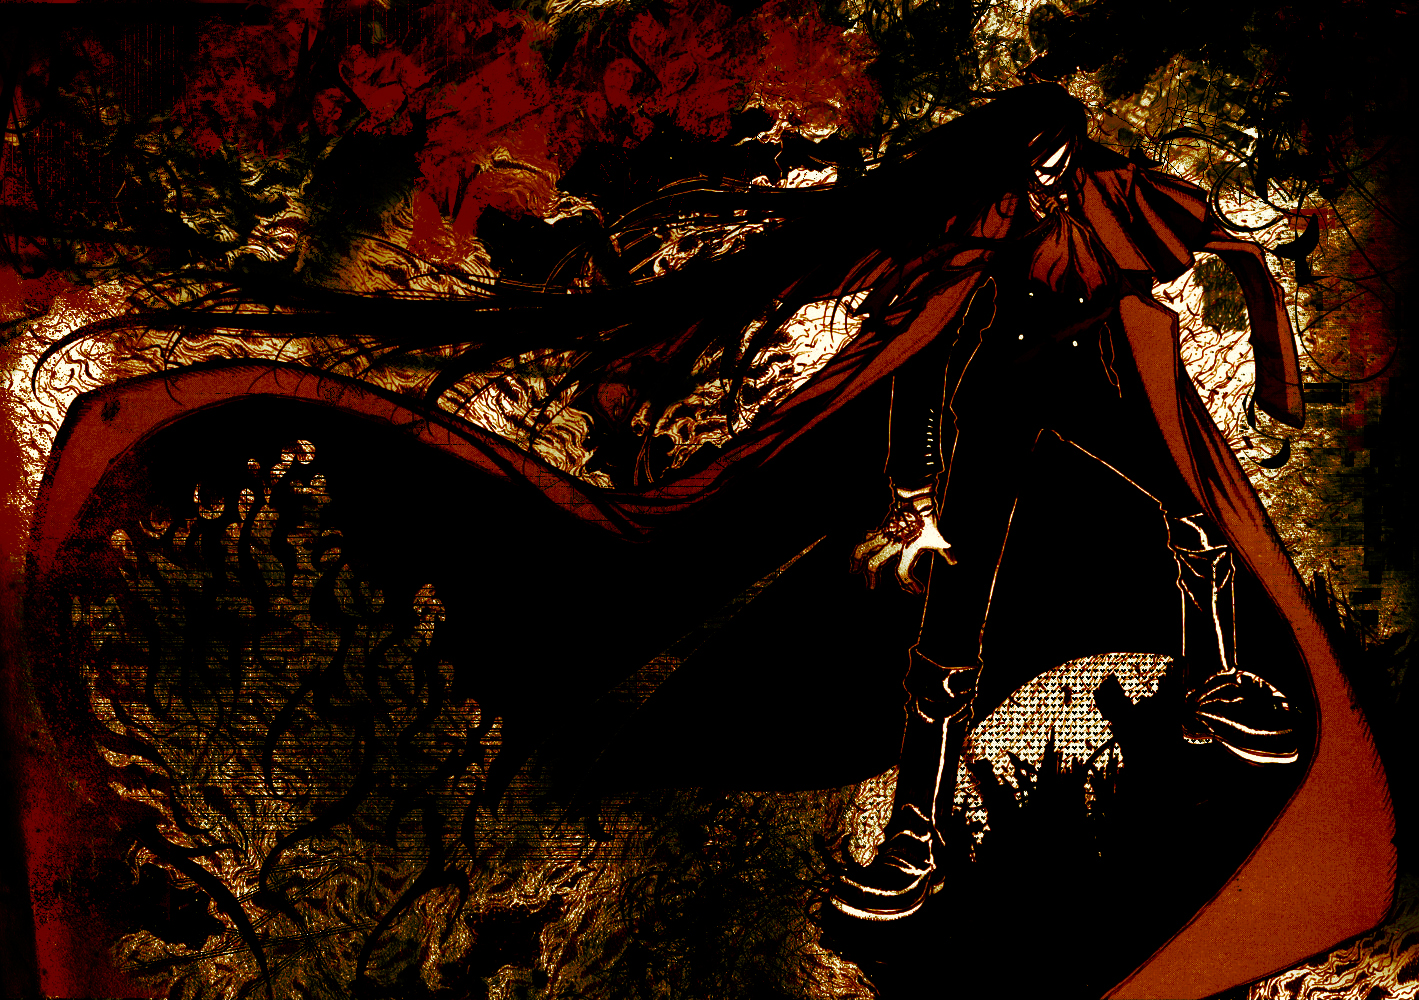 hellsing wallpaper 11 1440x900